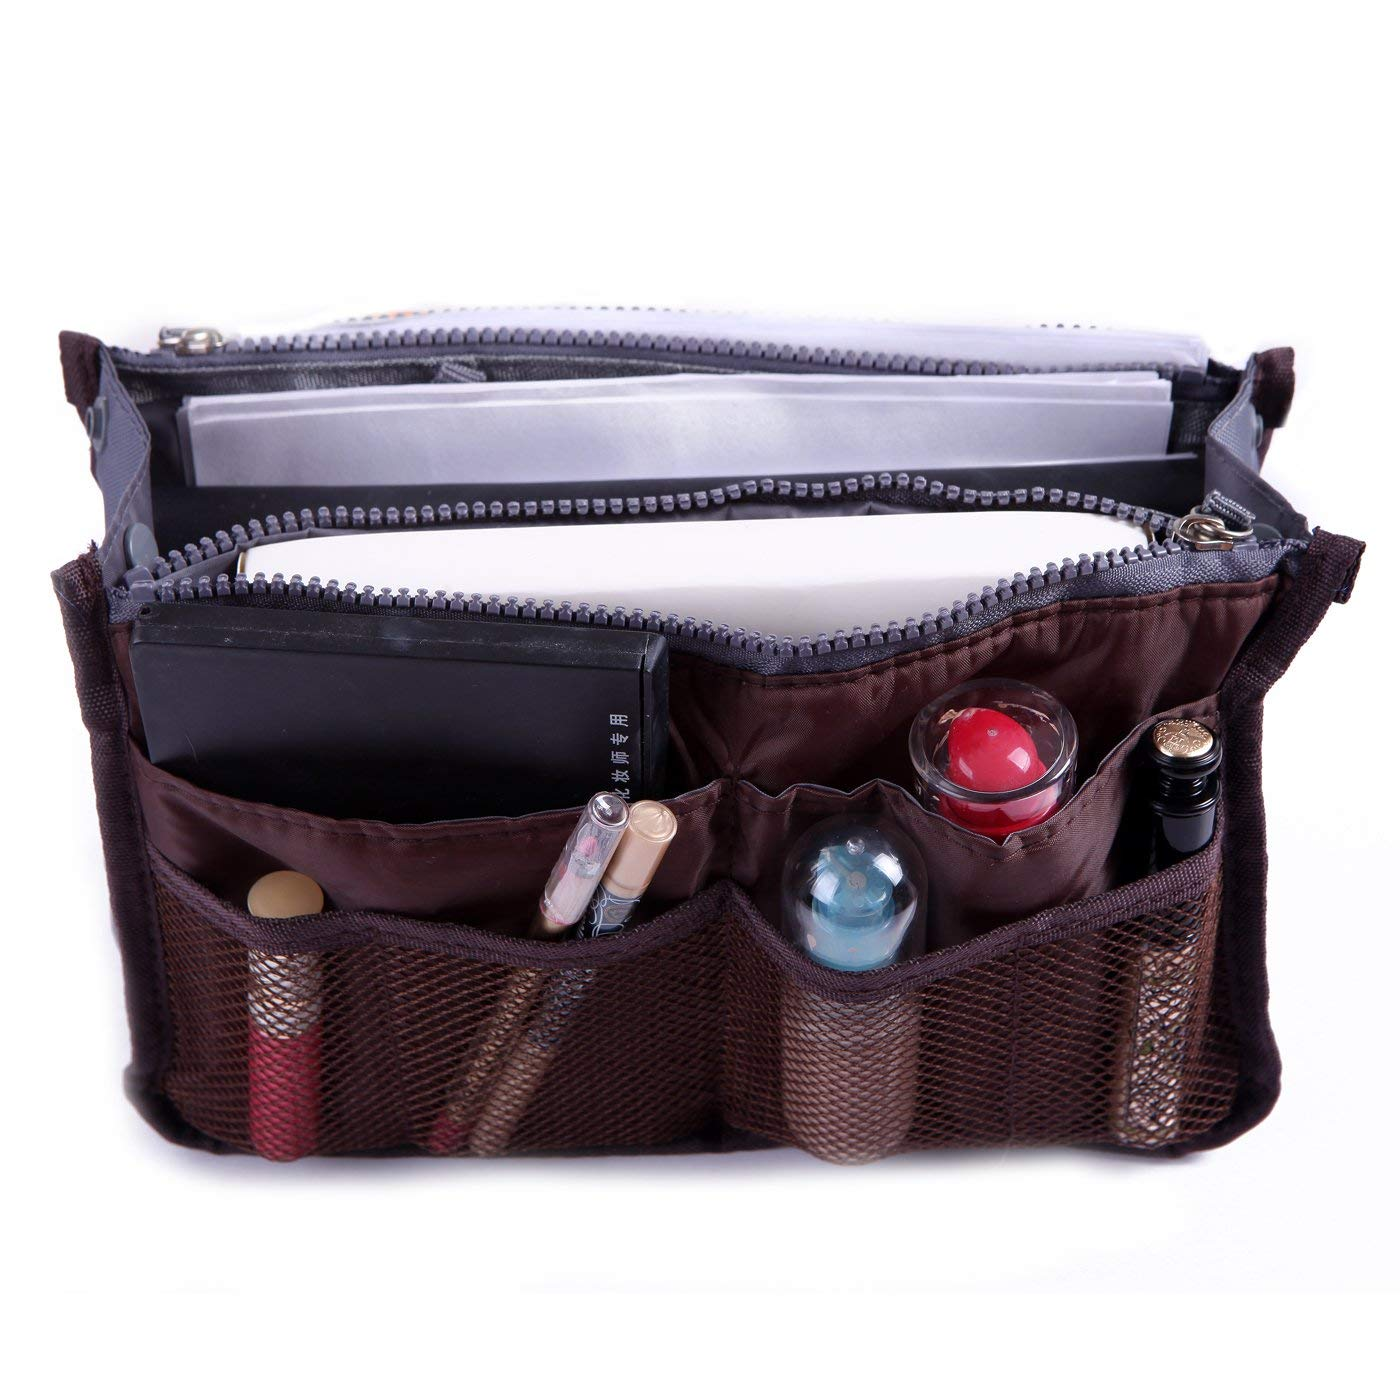 HDE Bag Organizer Oversize Purse Handbag Insert 13 Pockets (13.5 x 7.5 x 8.25)